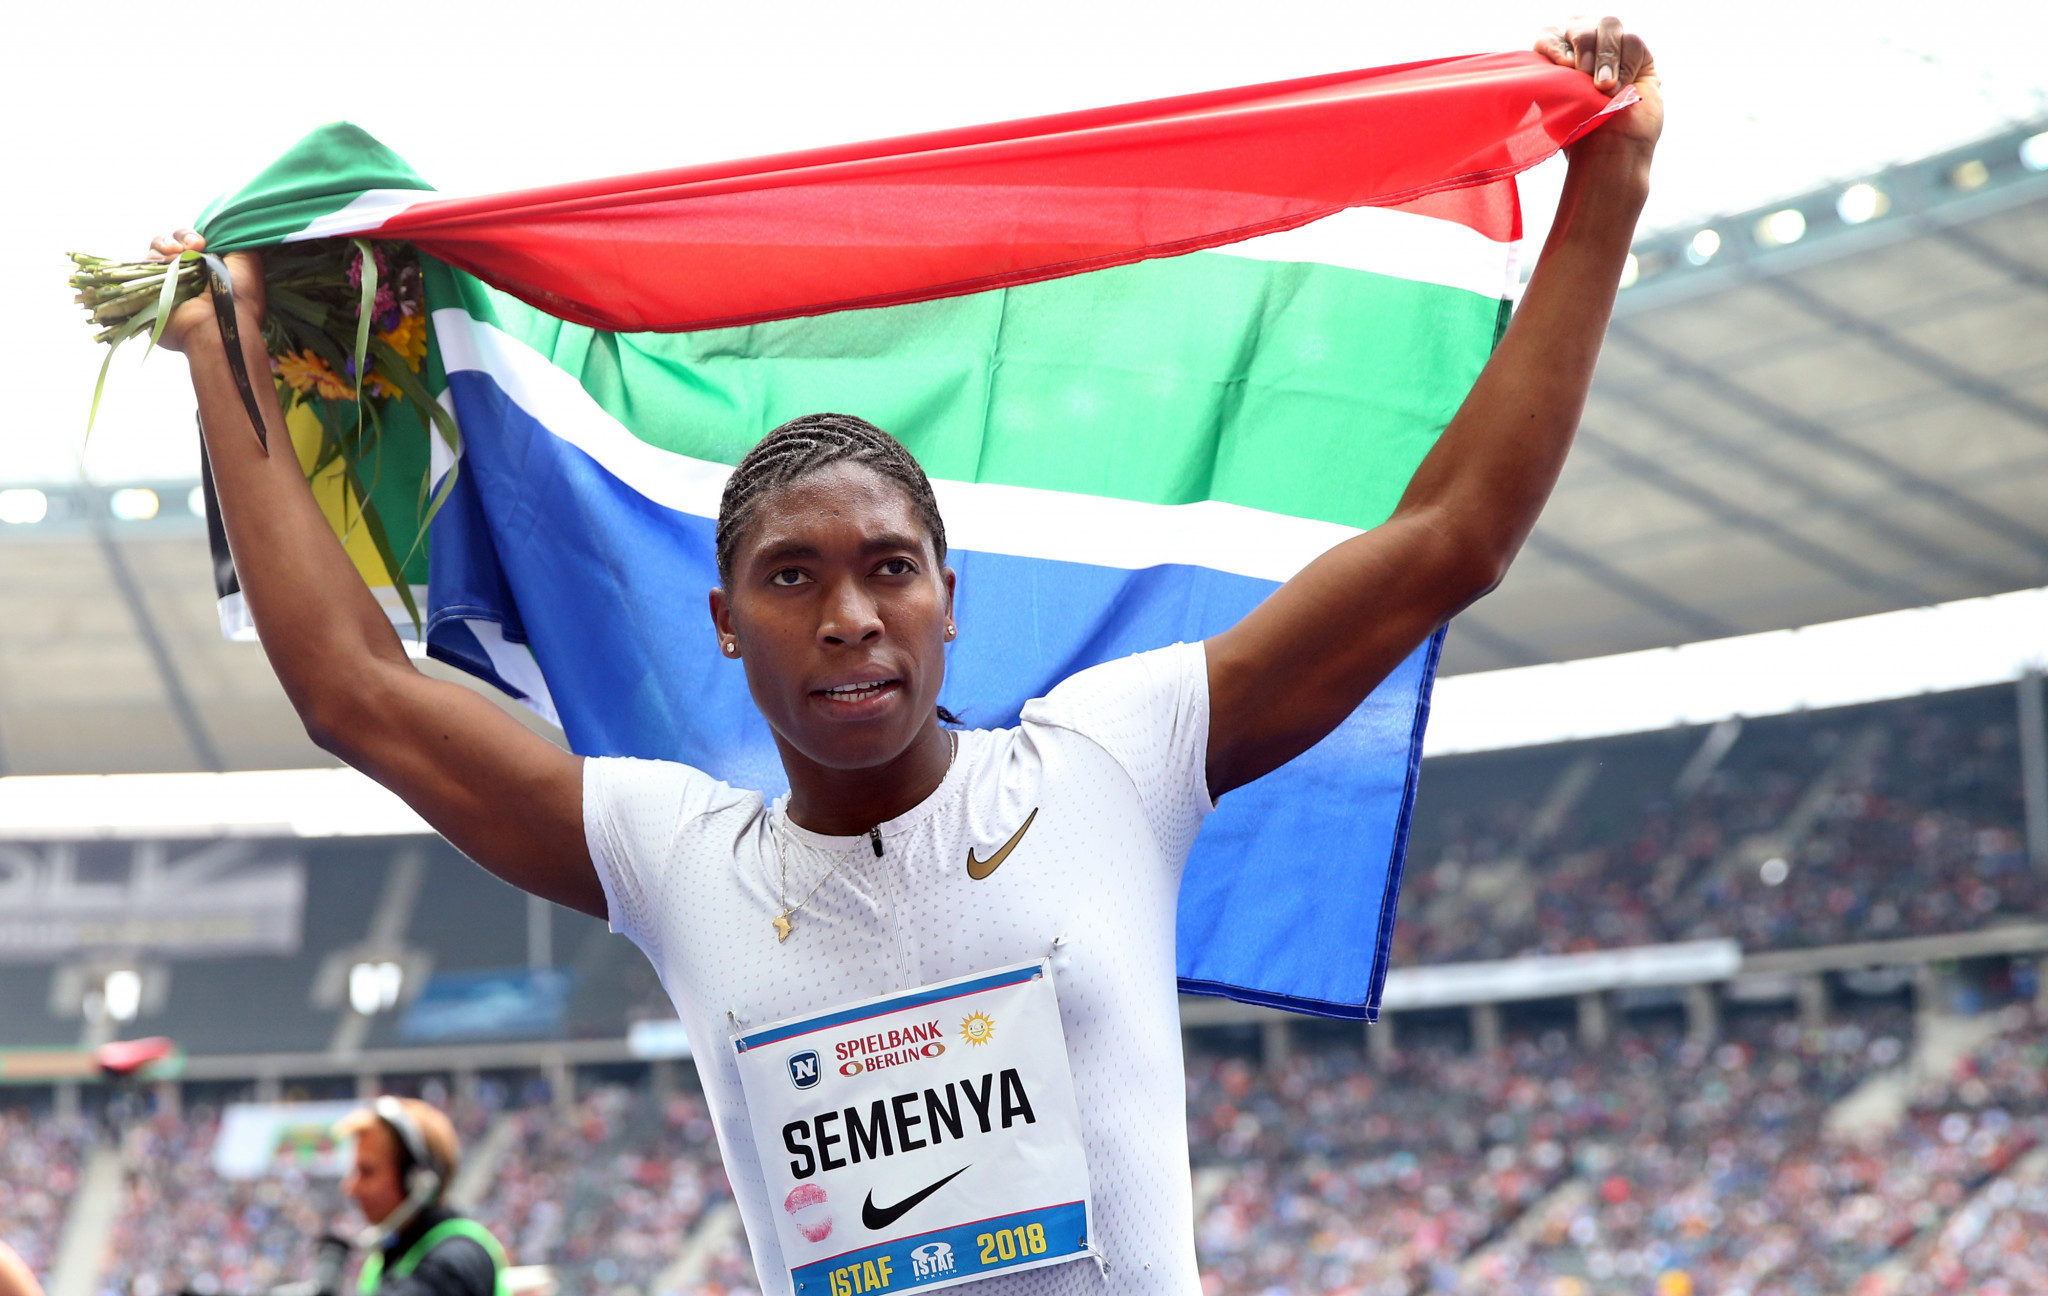 Caster Semenya is the most high-profile athlete due to be impacted by the new rules ©Getty Images